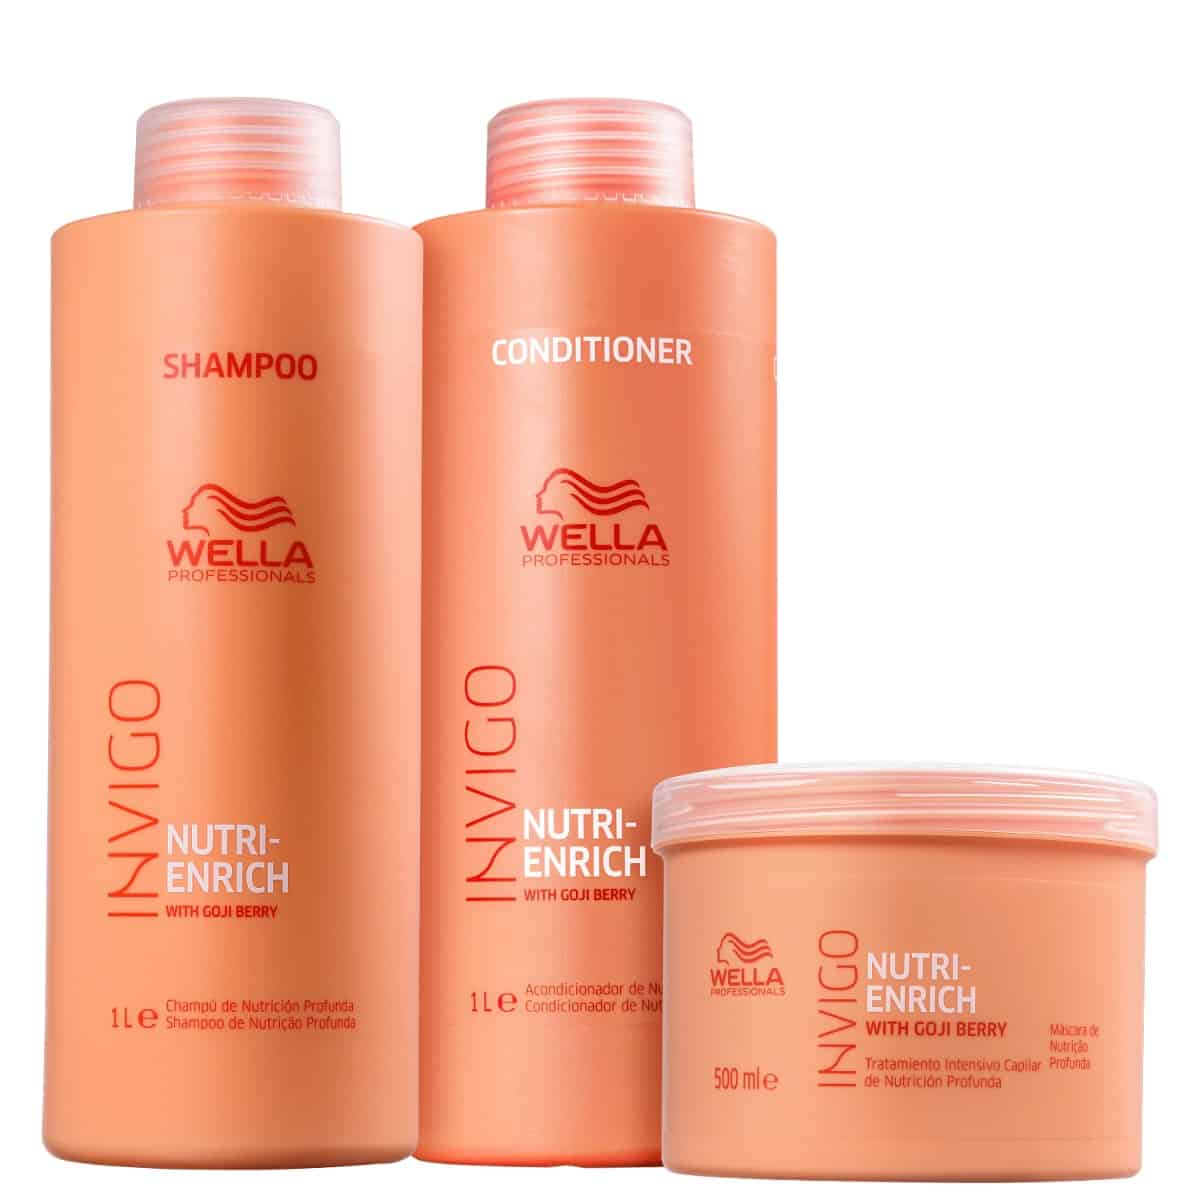 Kit Wella Professionals Invigo Nutri-Enrich Salon Trio (3 Produtos)